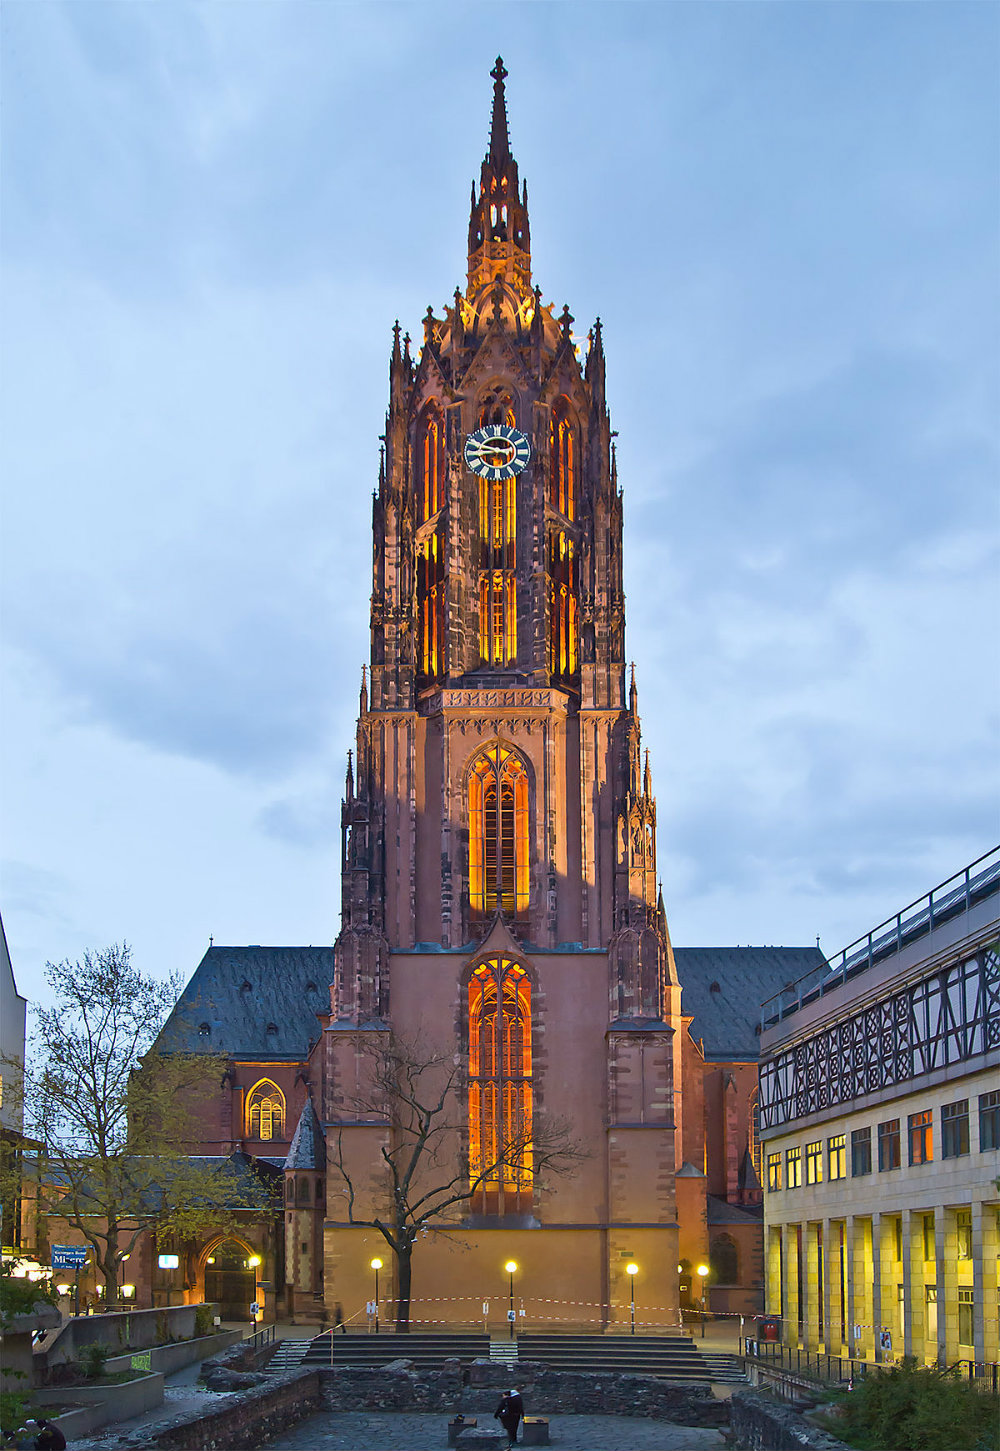 6 Of The Most Iconic Places To Visit in Frankfurt 07 Places To Visit in Frankfurt 6 Of The Most Iconic Places To Visit in Frankfurt 6 Of The Most Iconic Places To Visit in Frankfurt 07